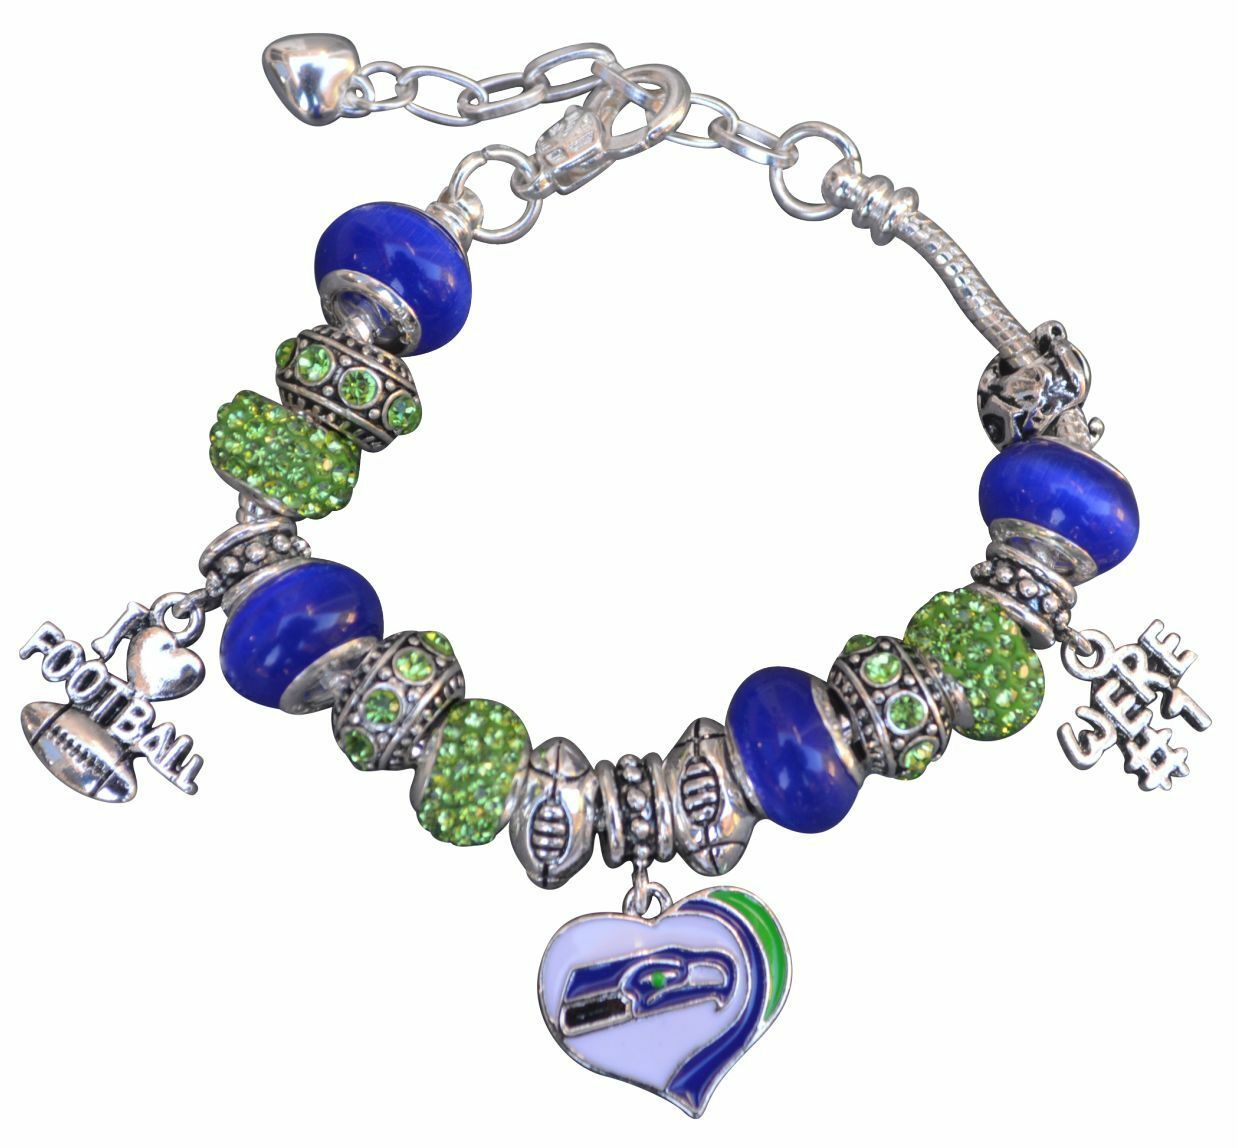 seahawks jewelry seattle seahawks bracelet seahawks jewelry seahawks gift 572